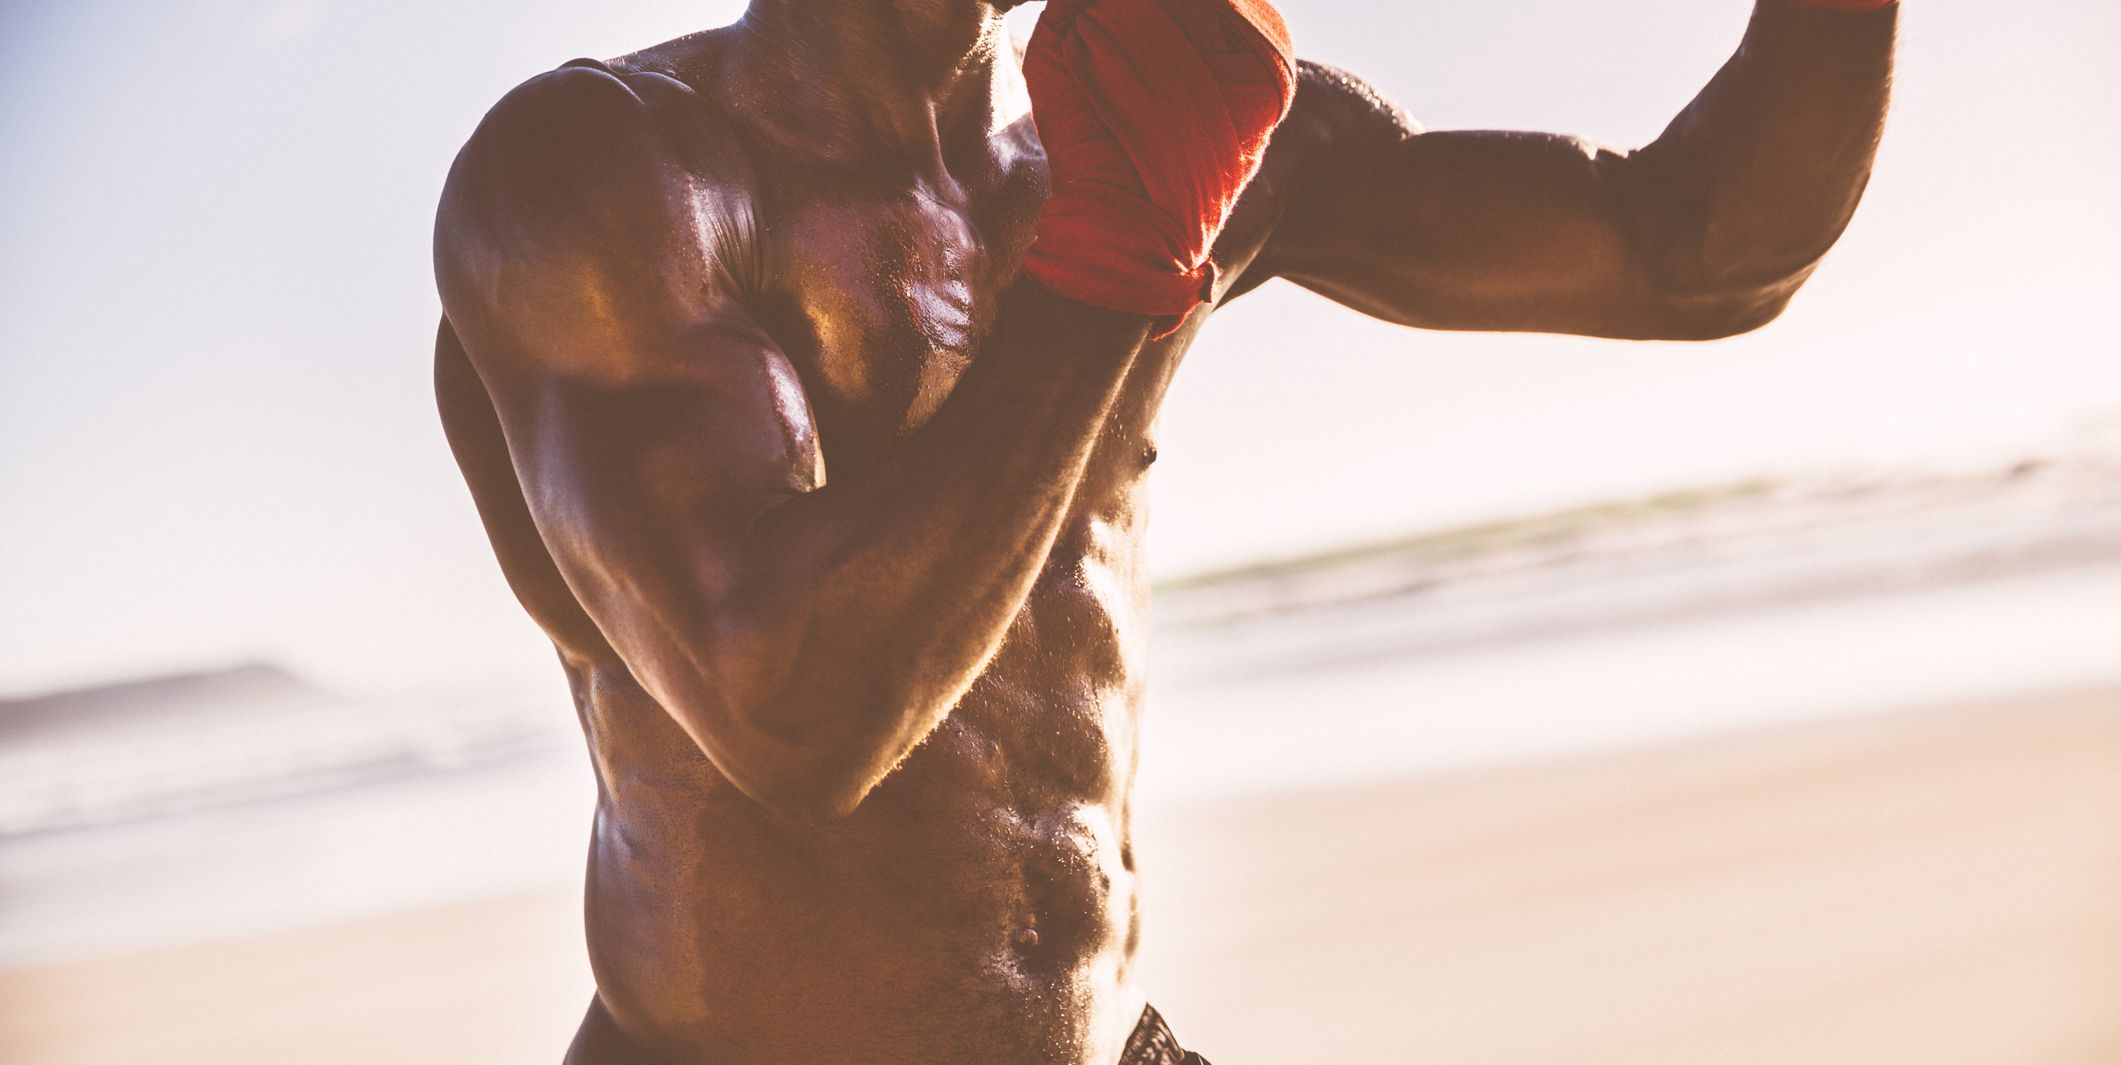 Close up of a fit male body